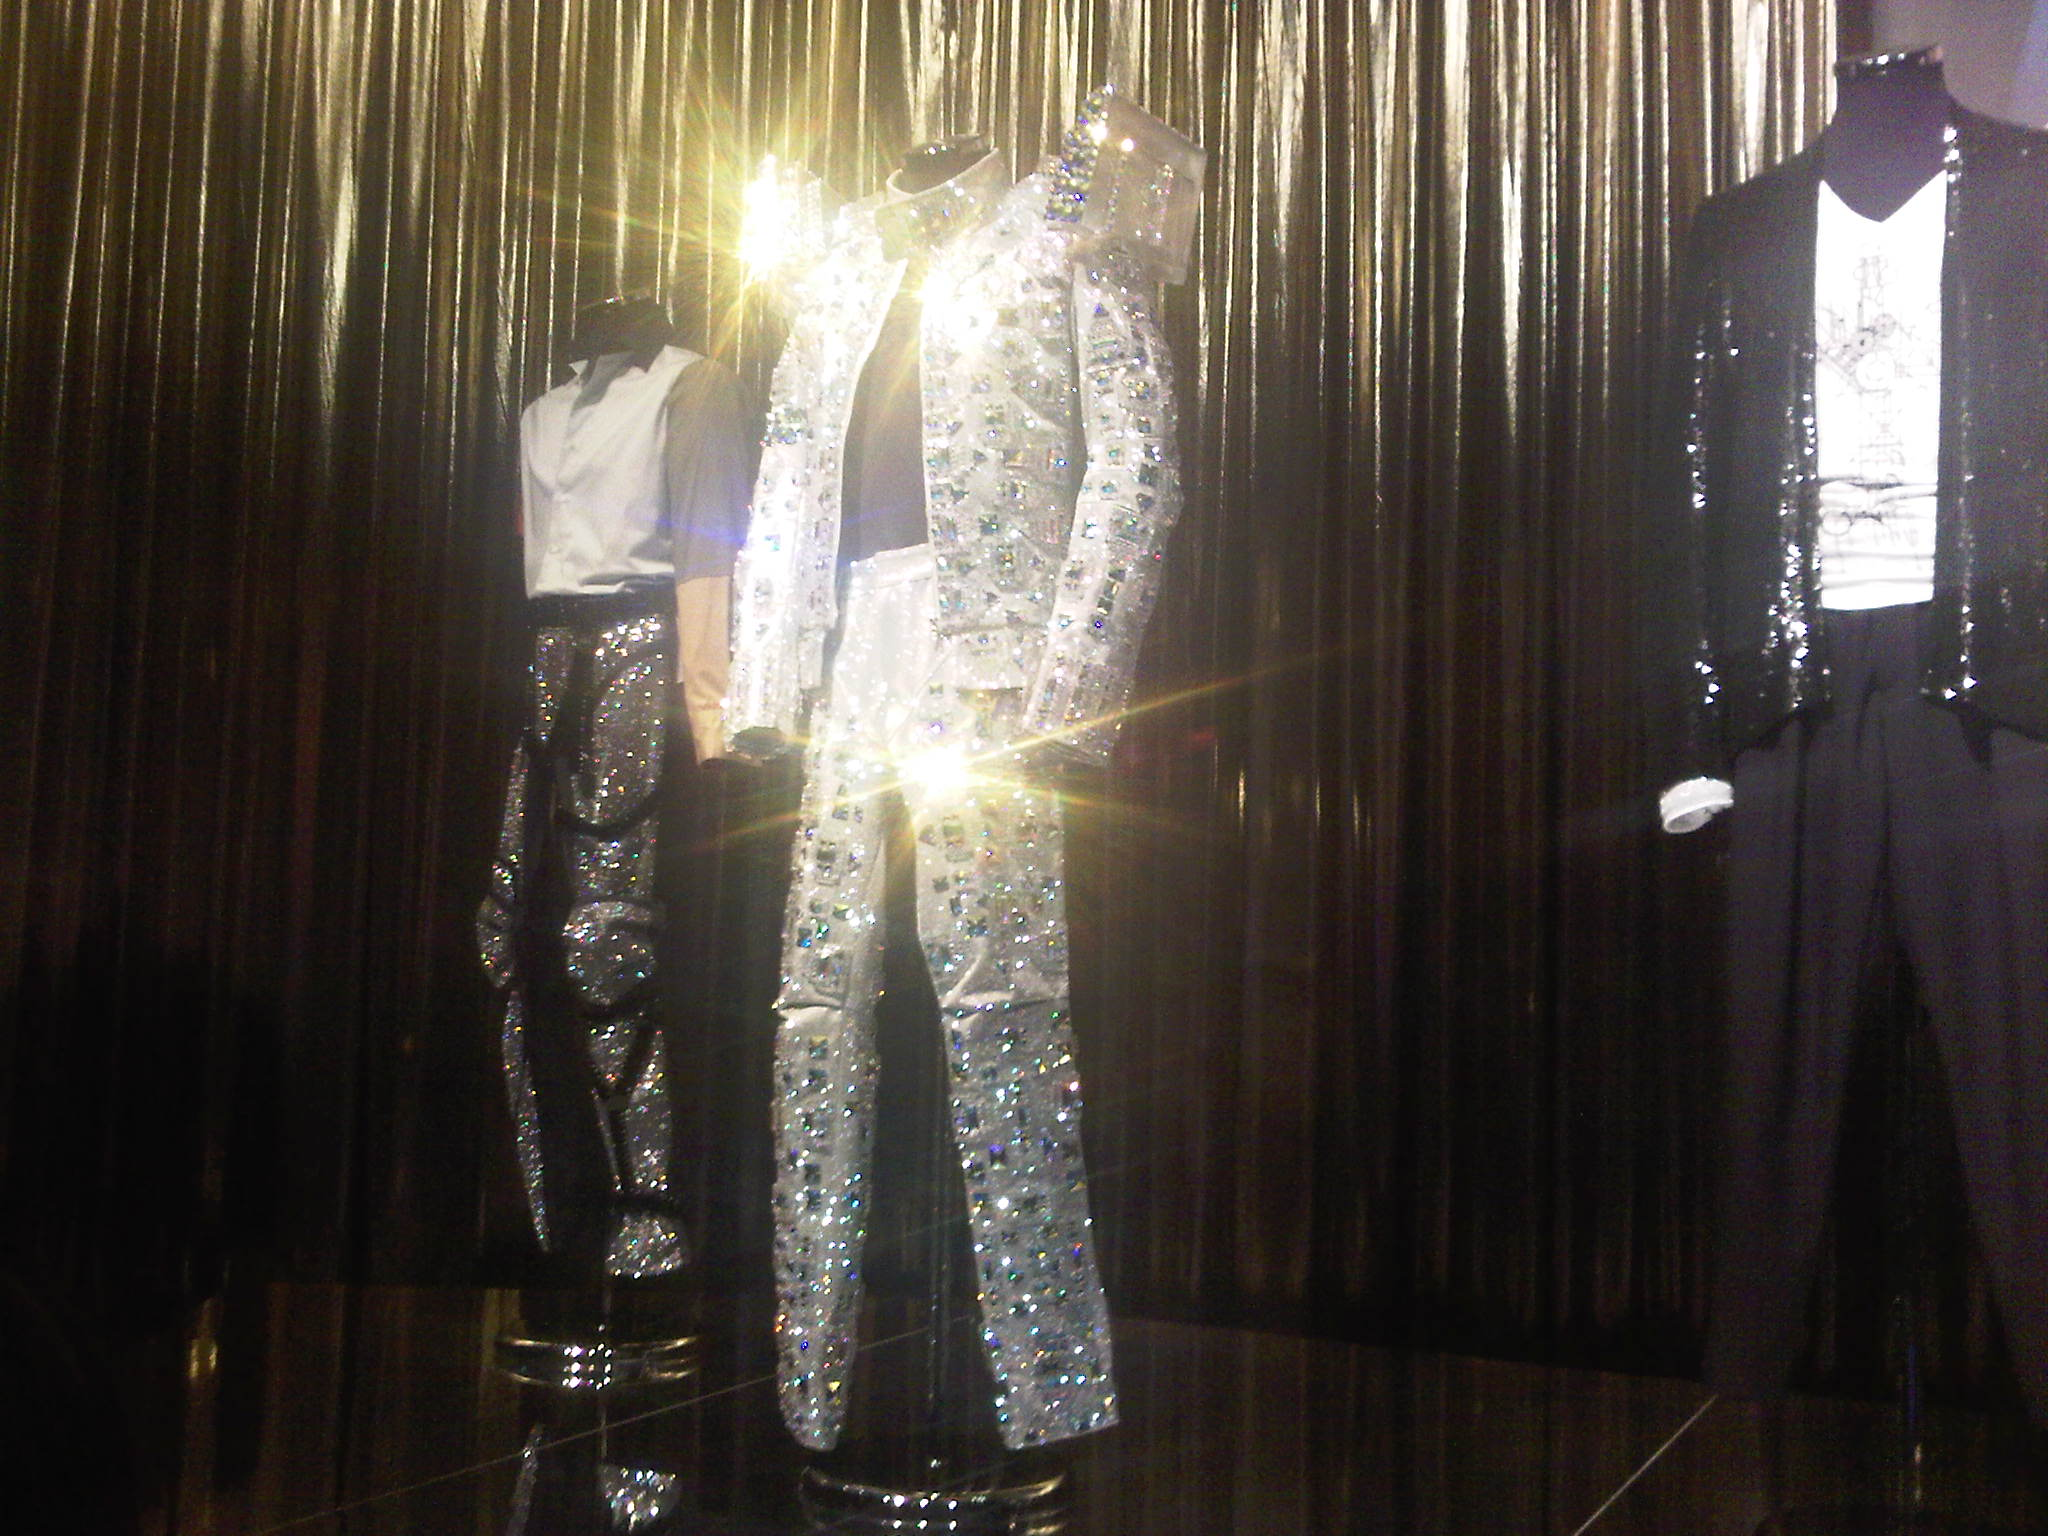 IMG00021 20100227 1639 Review: The Official Michael Jackson Exhibition / London